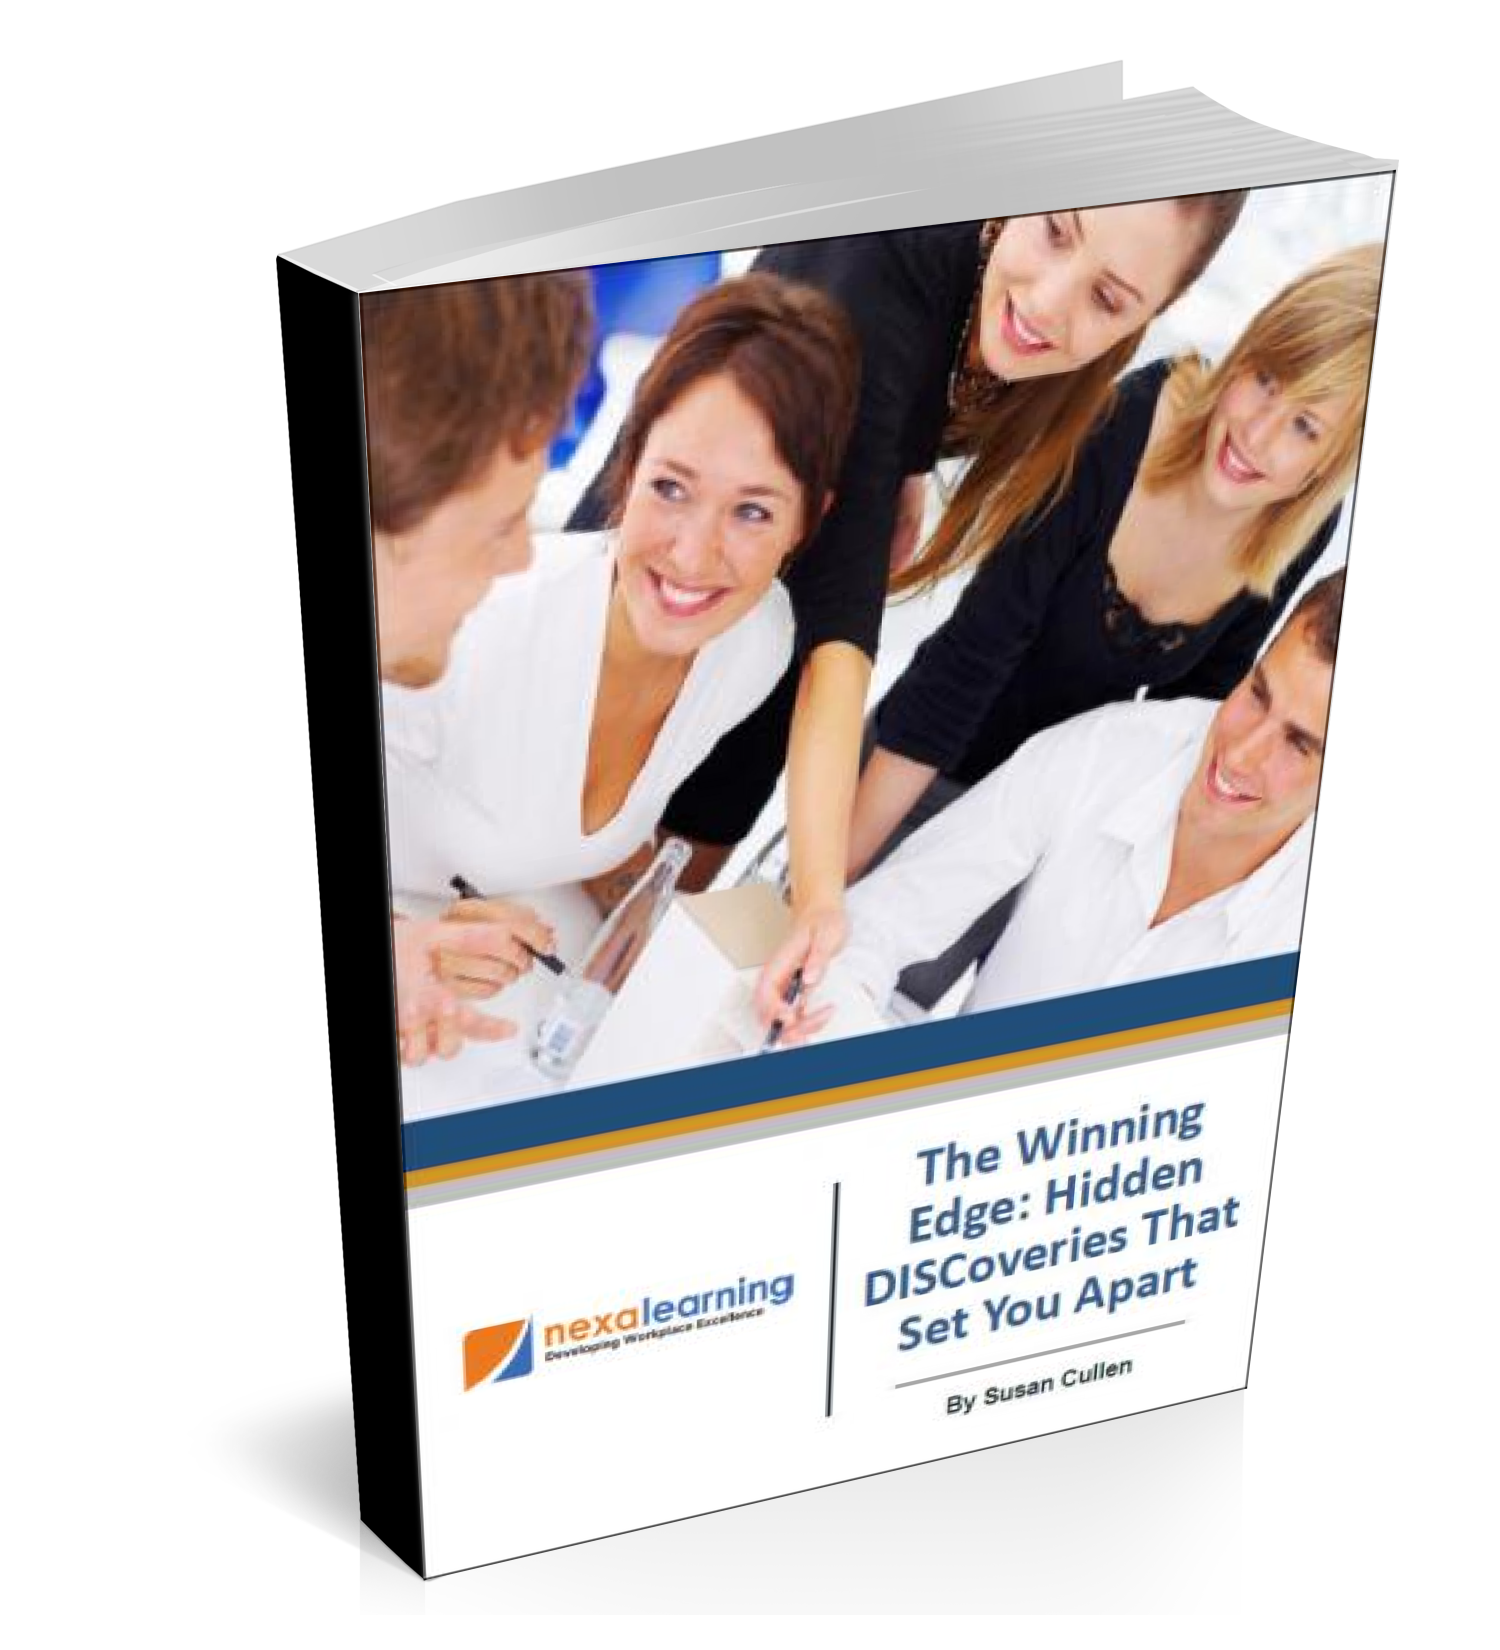 The Winning Edge: Hidden DISCoveries That Set You Apart - NexaLearning